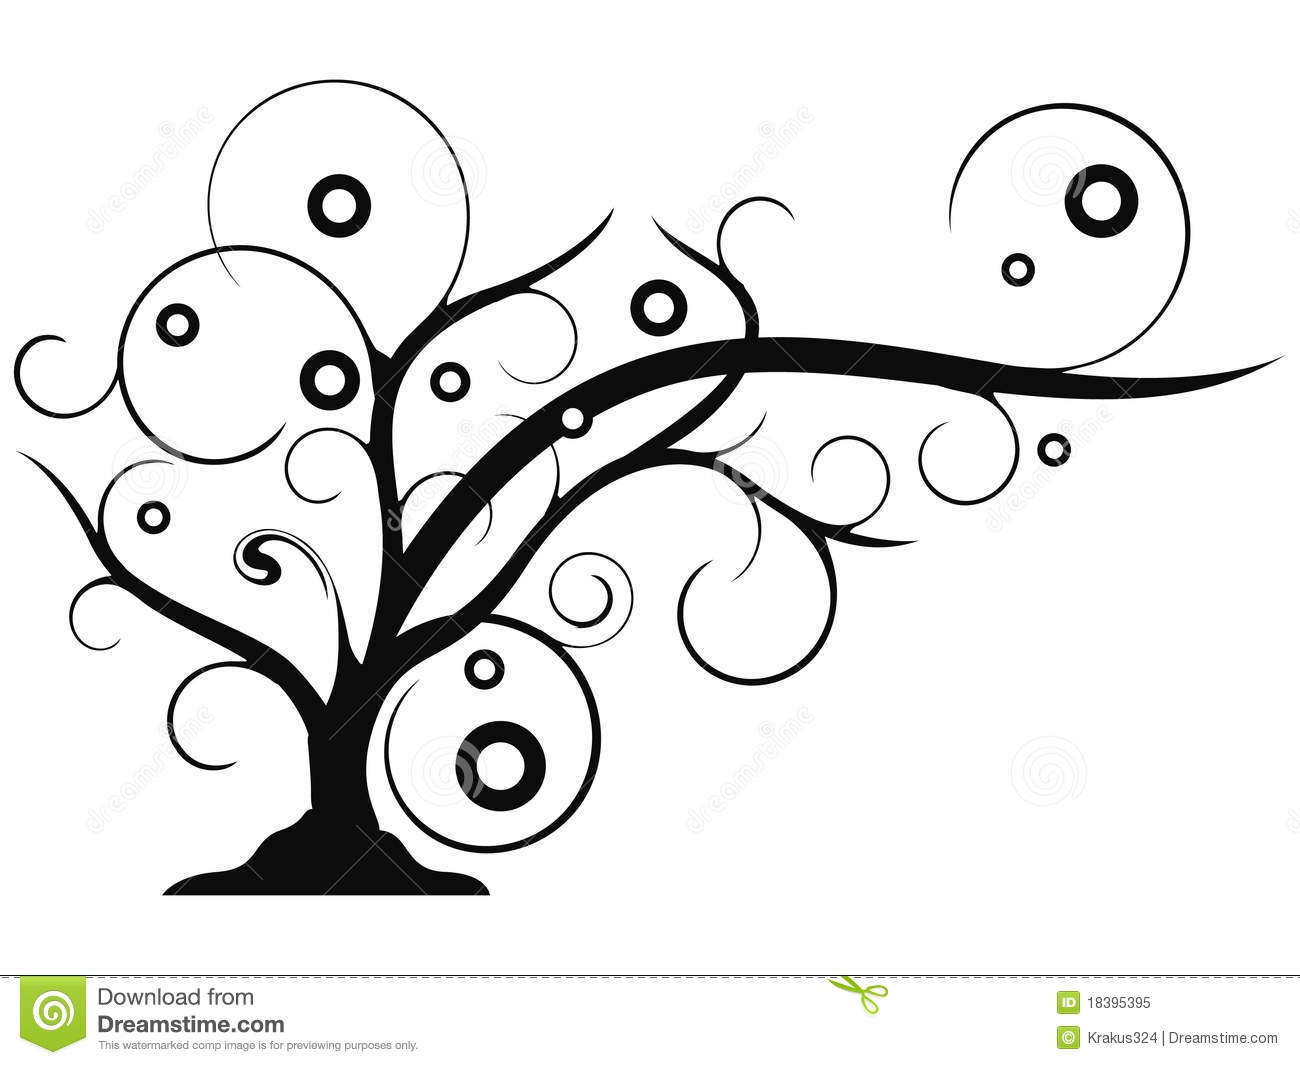 Tree Line Art Design : Abstract tree growing clip art stock vector illustration